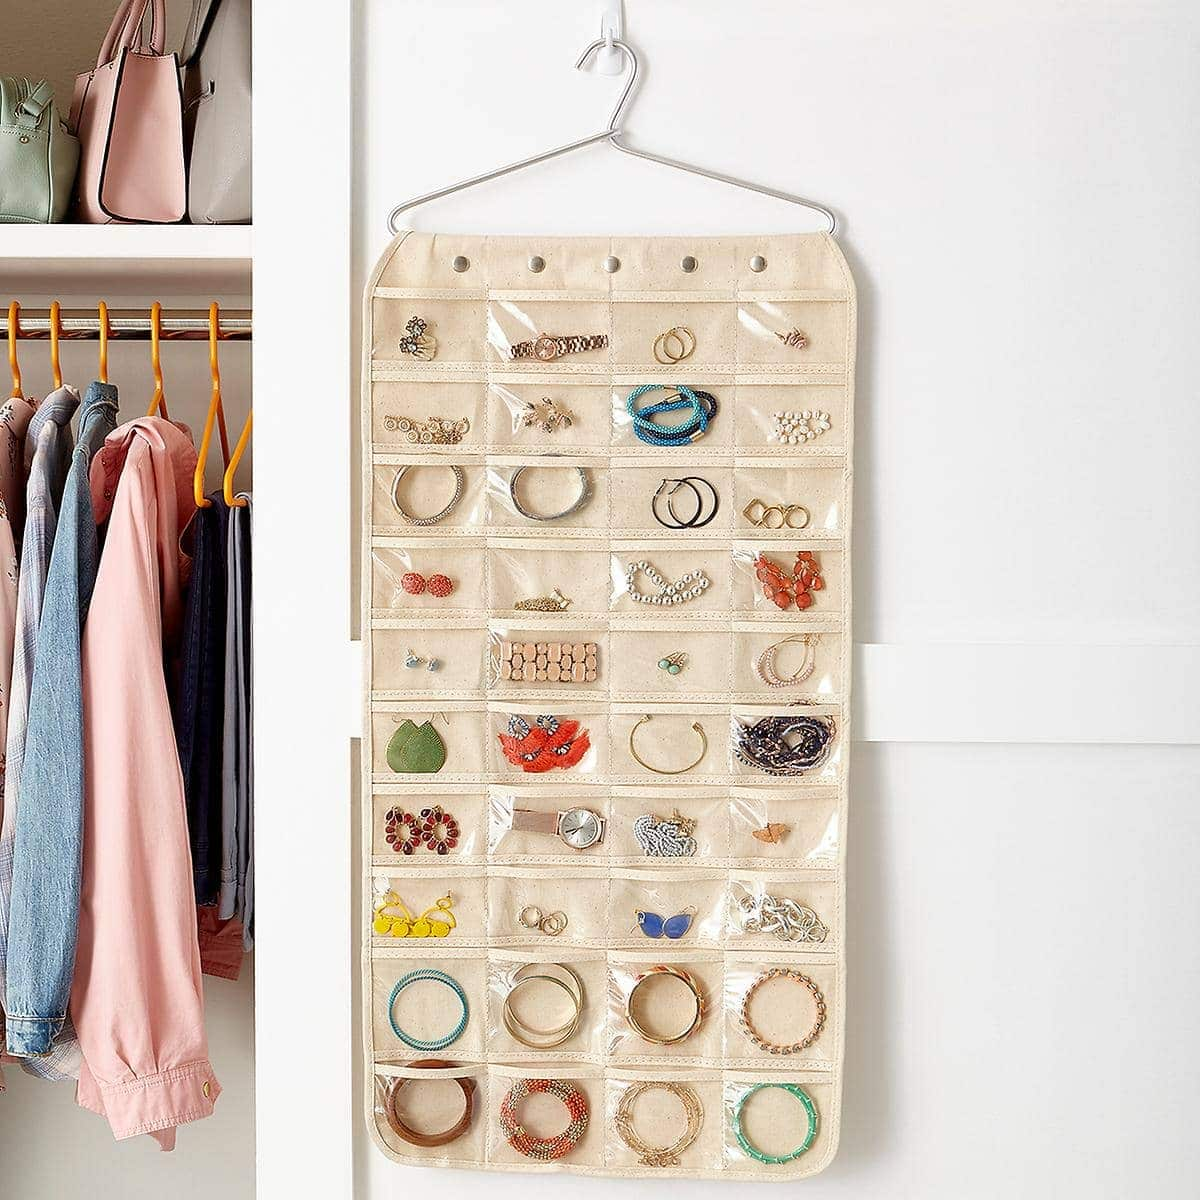 hang jewelry in the closet